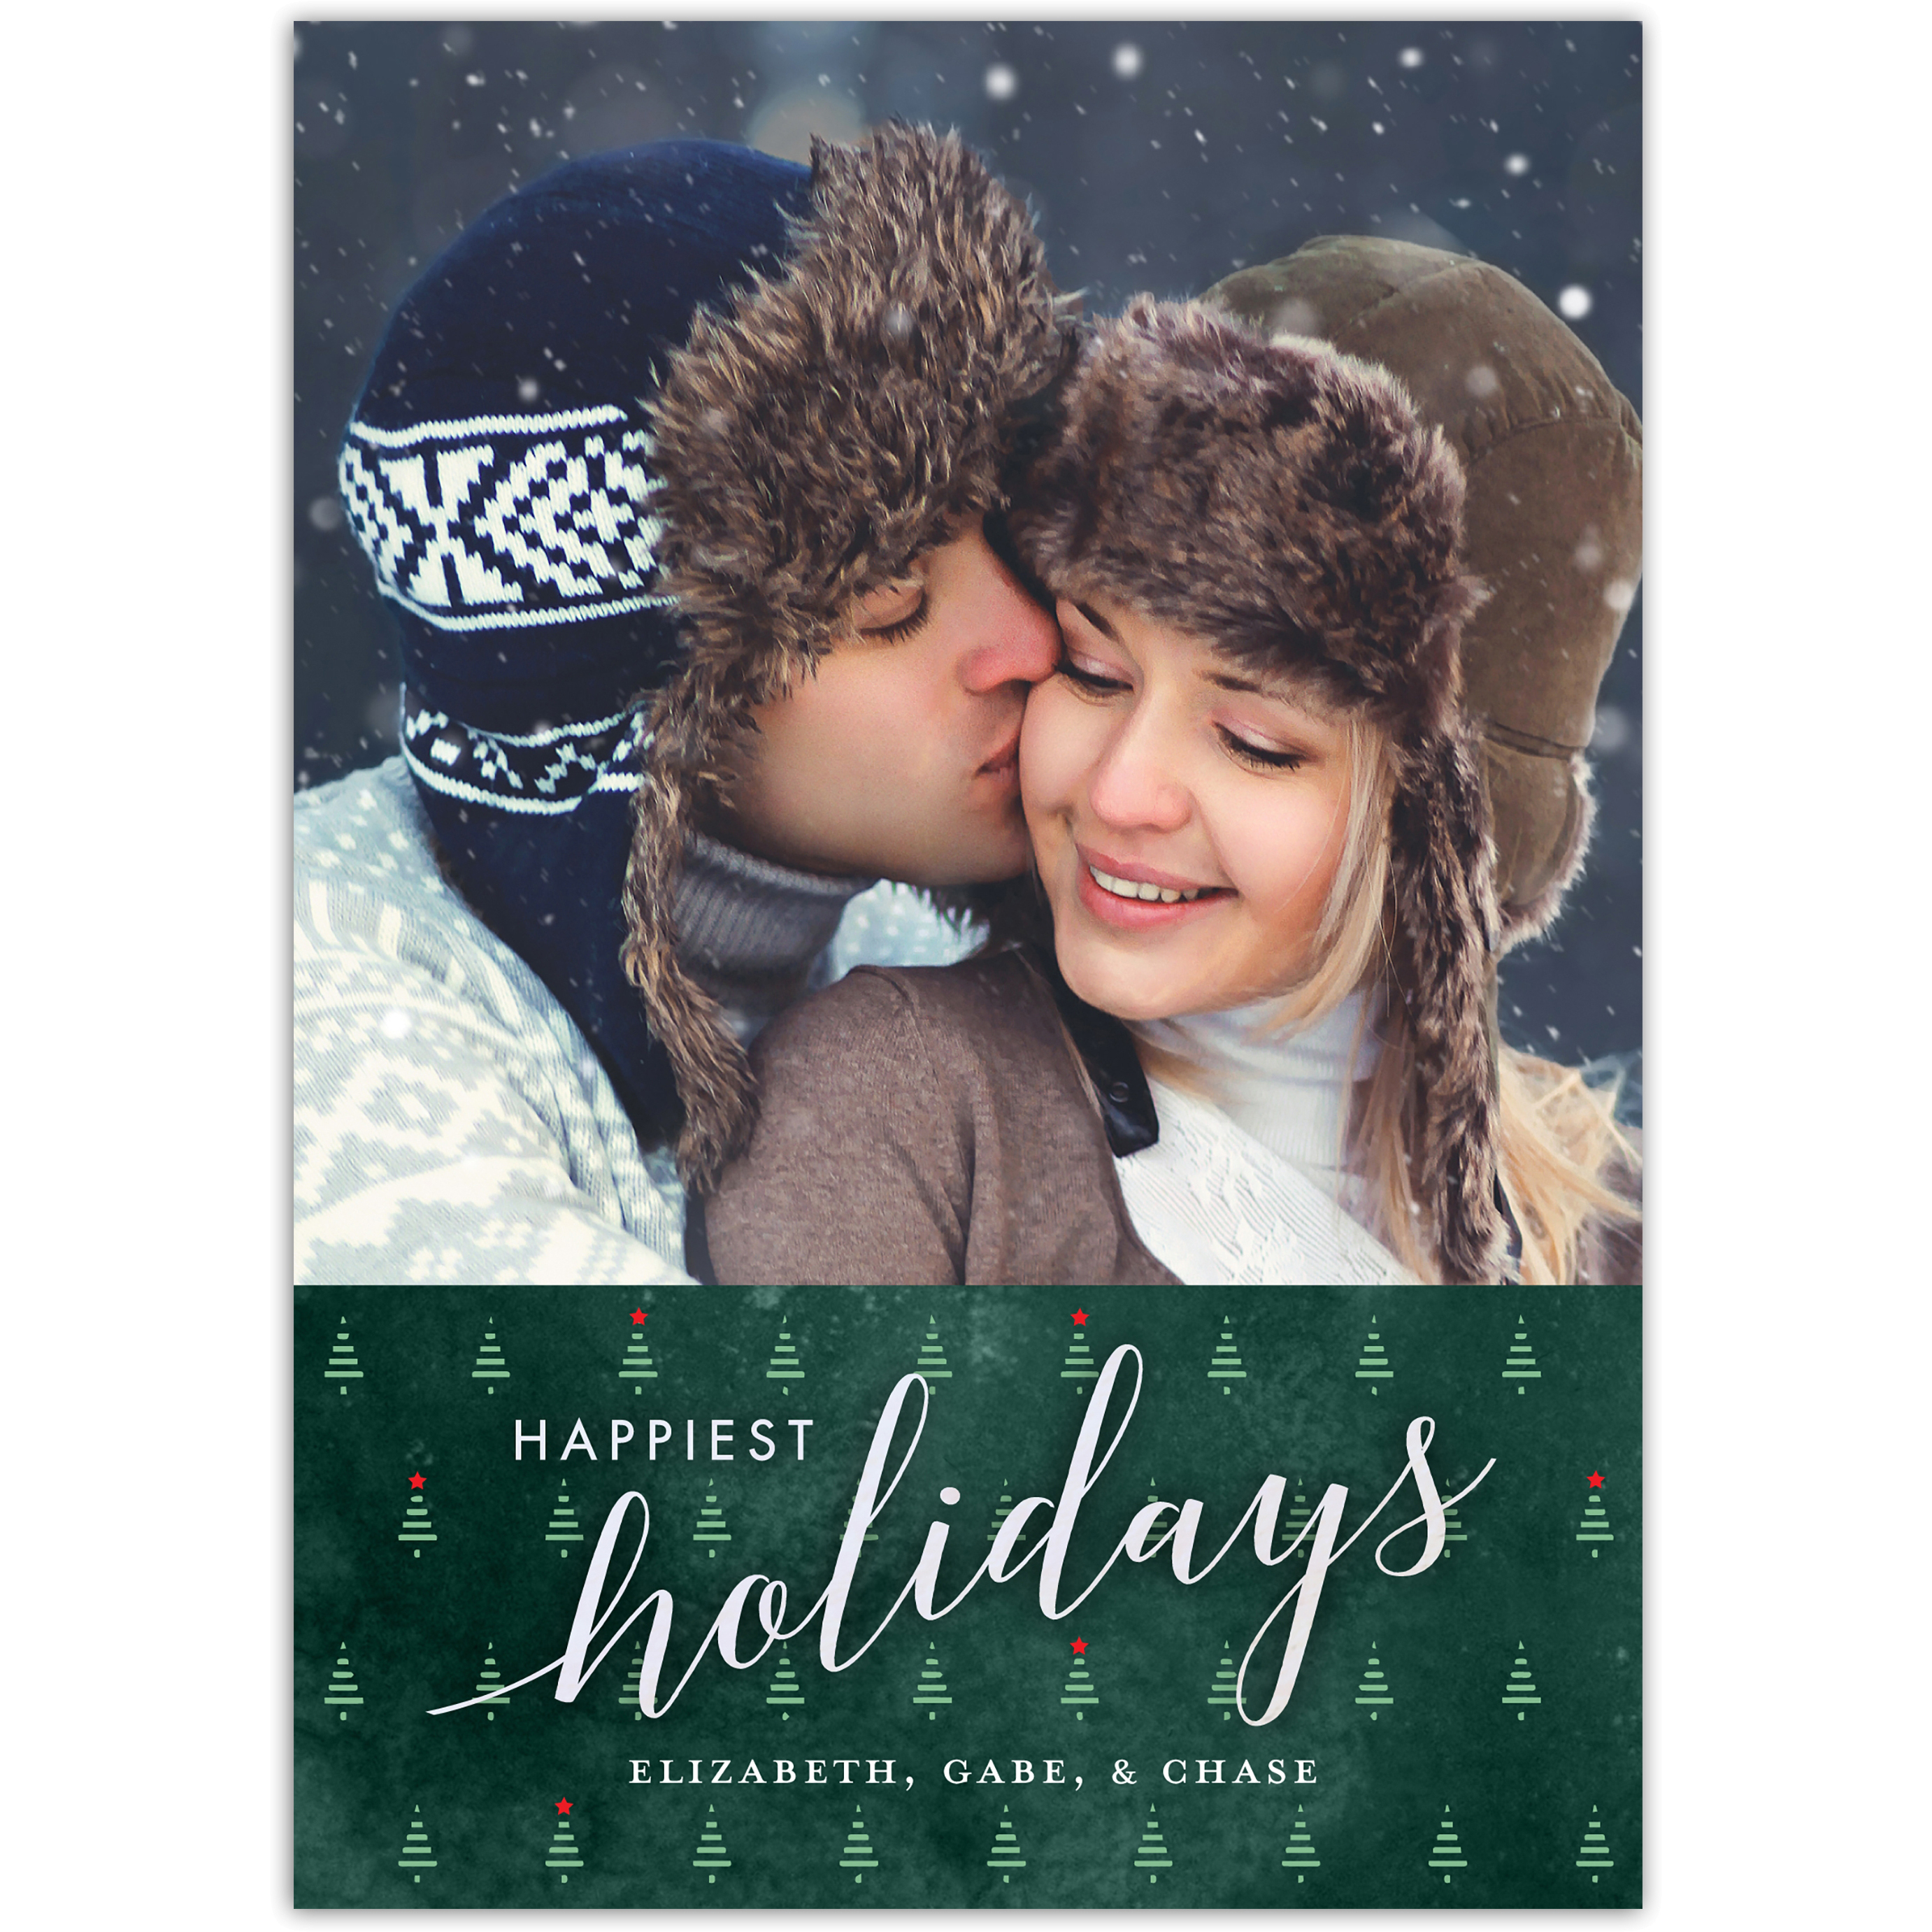 Happiest Holiday Trees - 5x7 Personalized Holiday Card